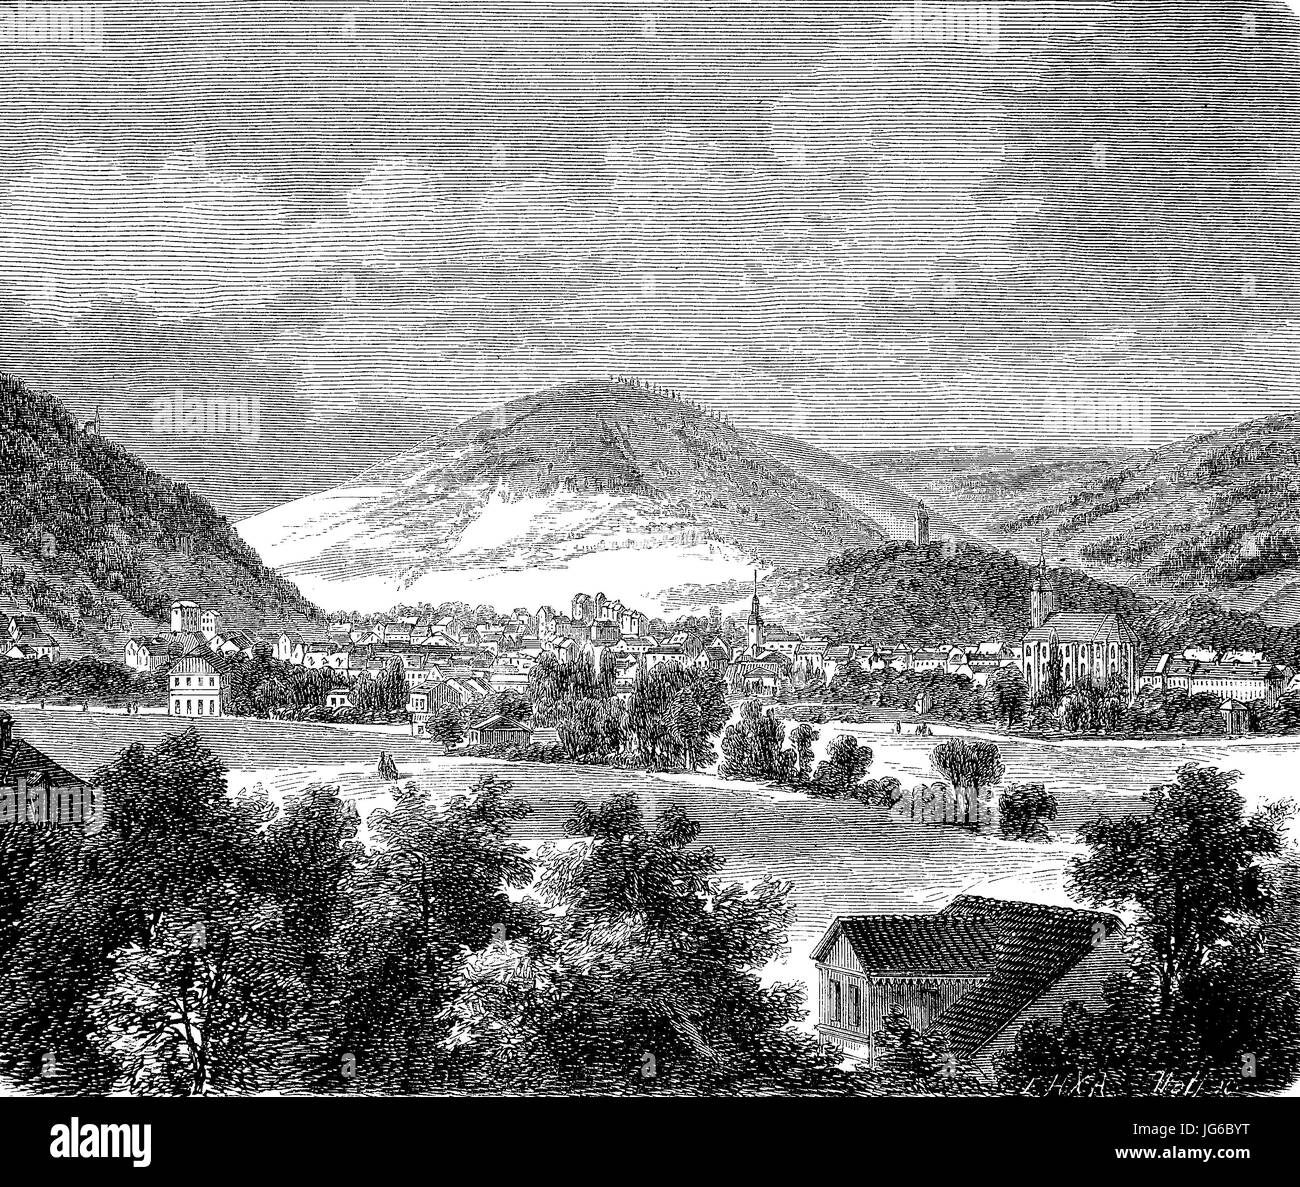 Digital improved:, view of Suh, a city in Thuringia, Germany, illustration from the 19th century Stock Photo